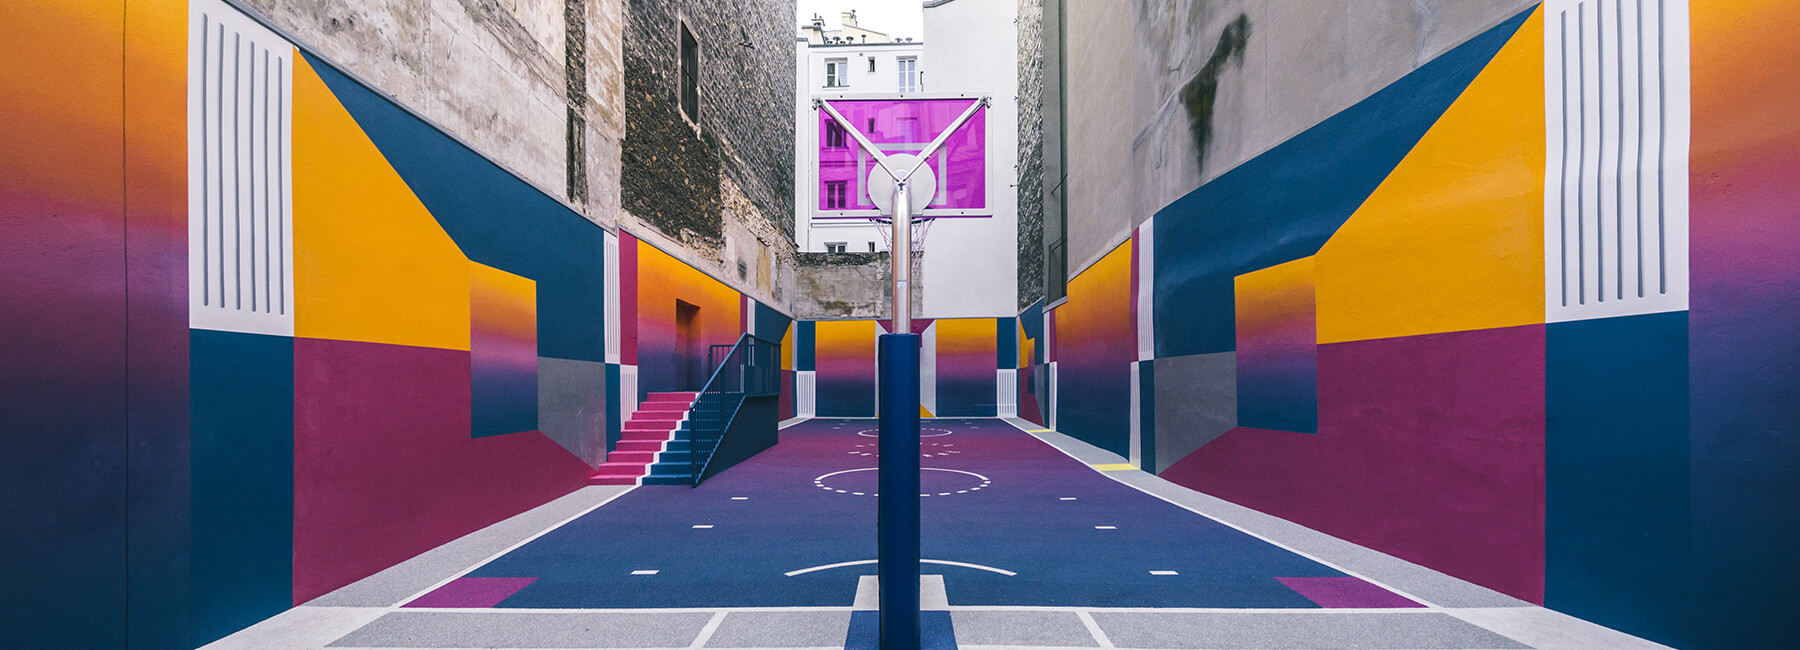 pigalle paris basketball court